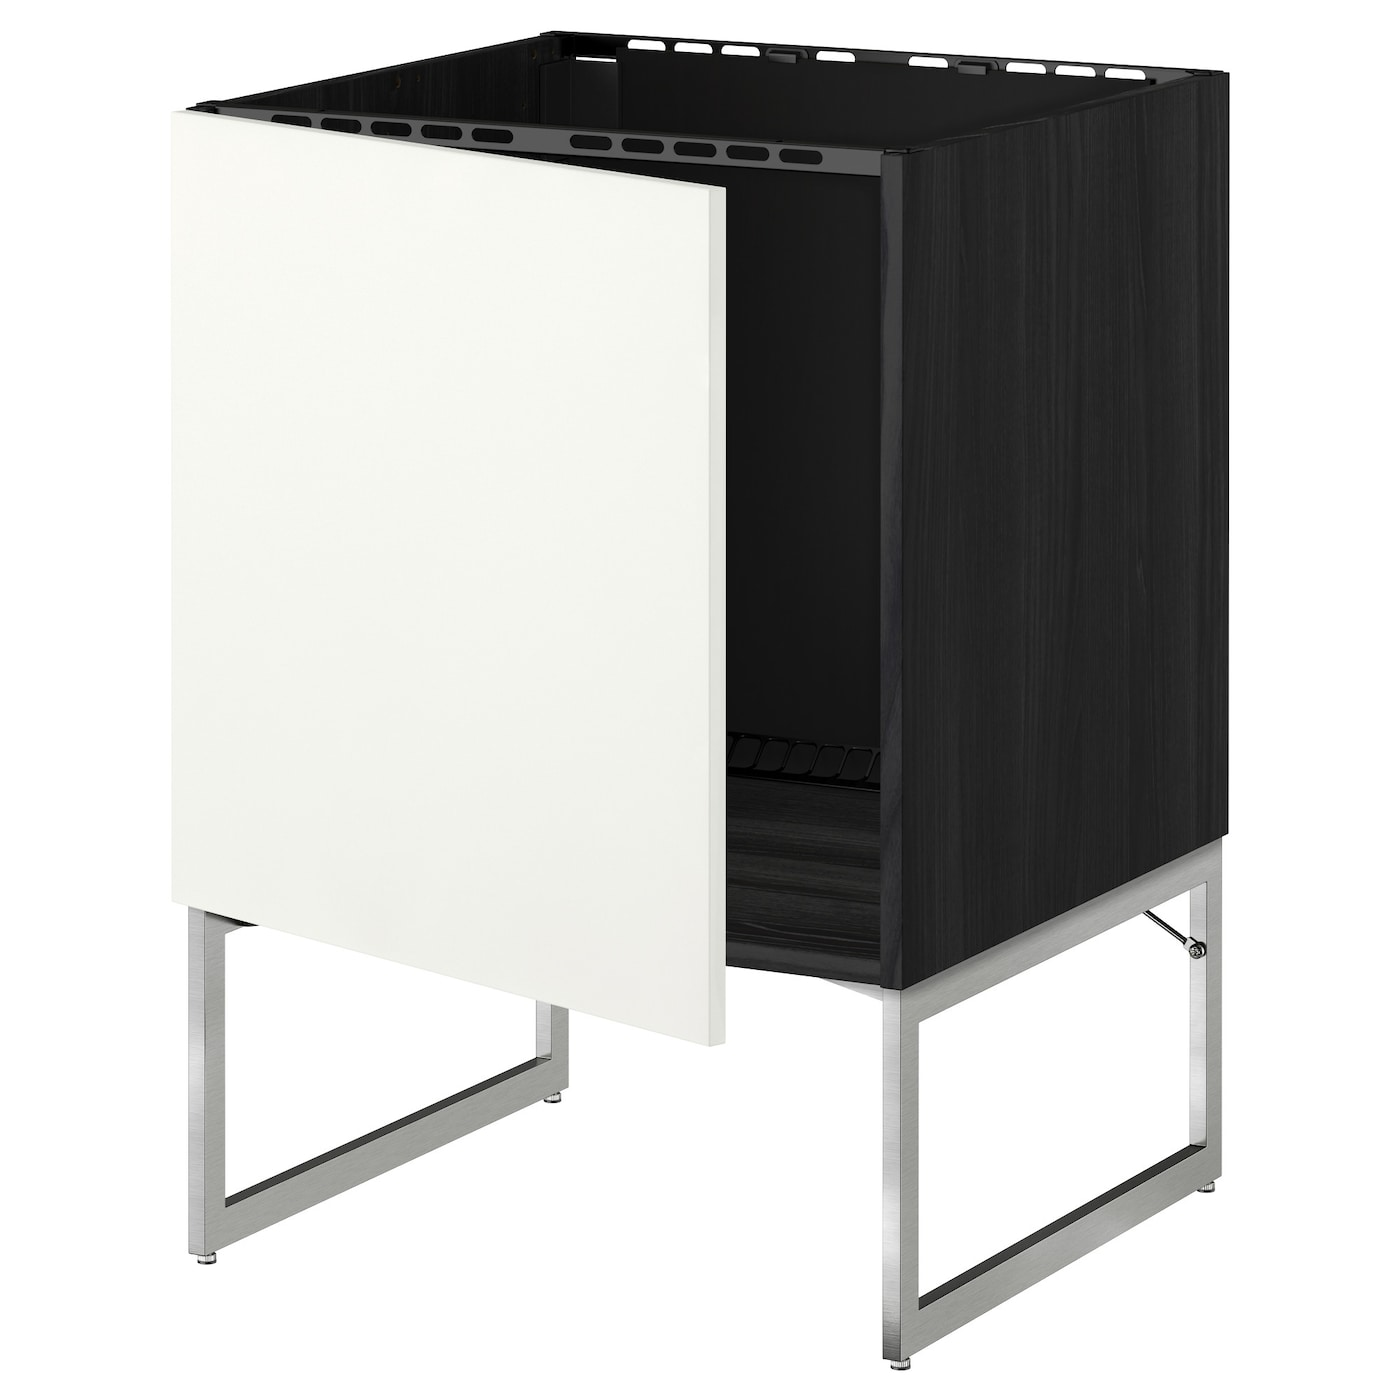 IKEA METOD base cabinet for sink You can choose to mount the door on the right or left side.